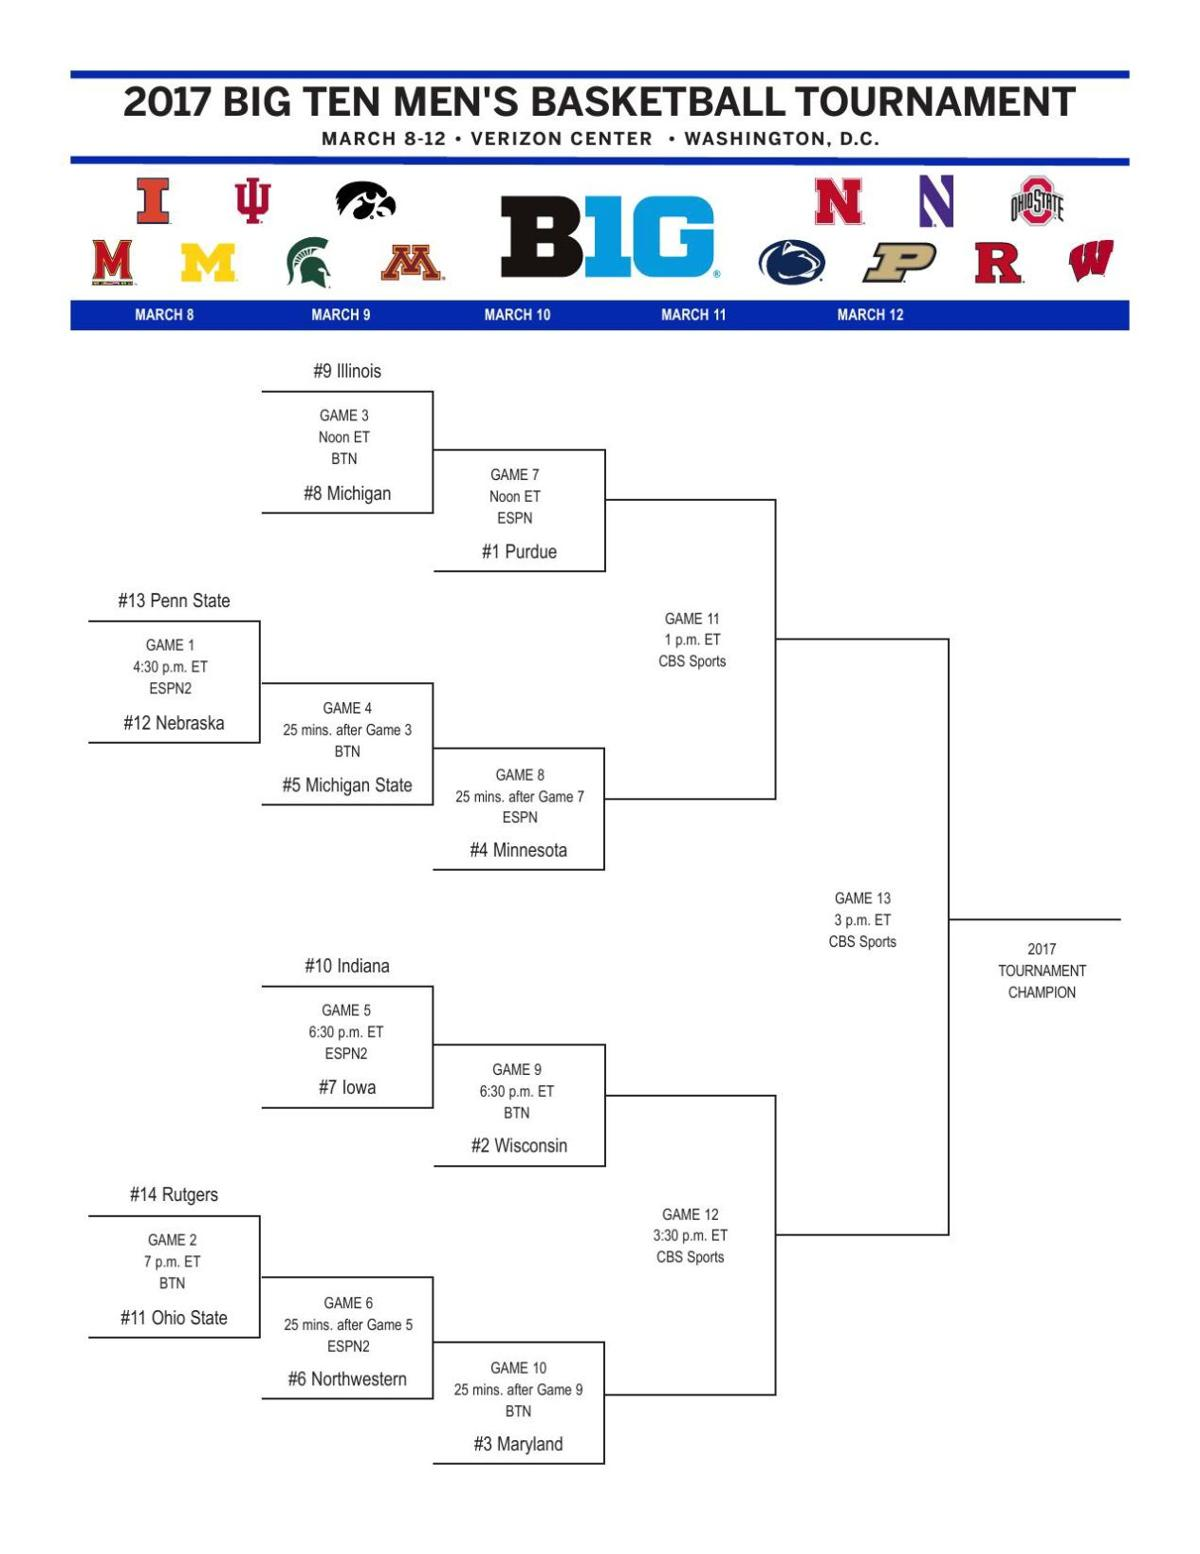 Printable 2017 Big Ten men's basketball tournament bracket